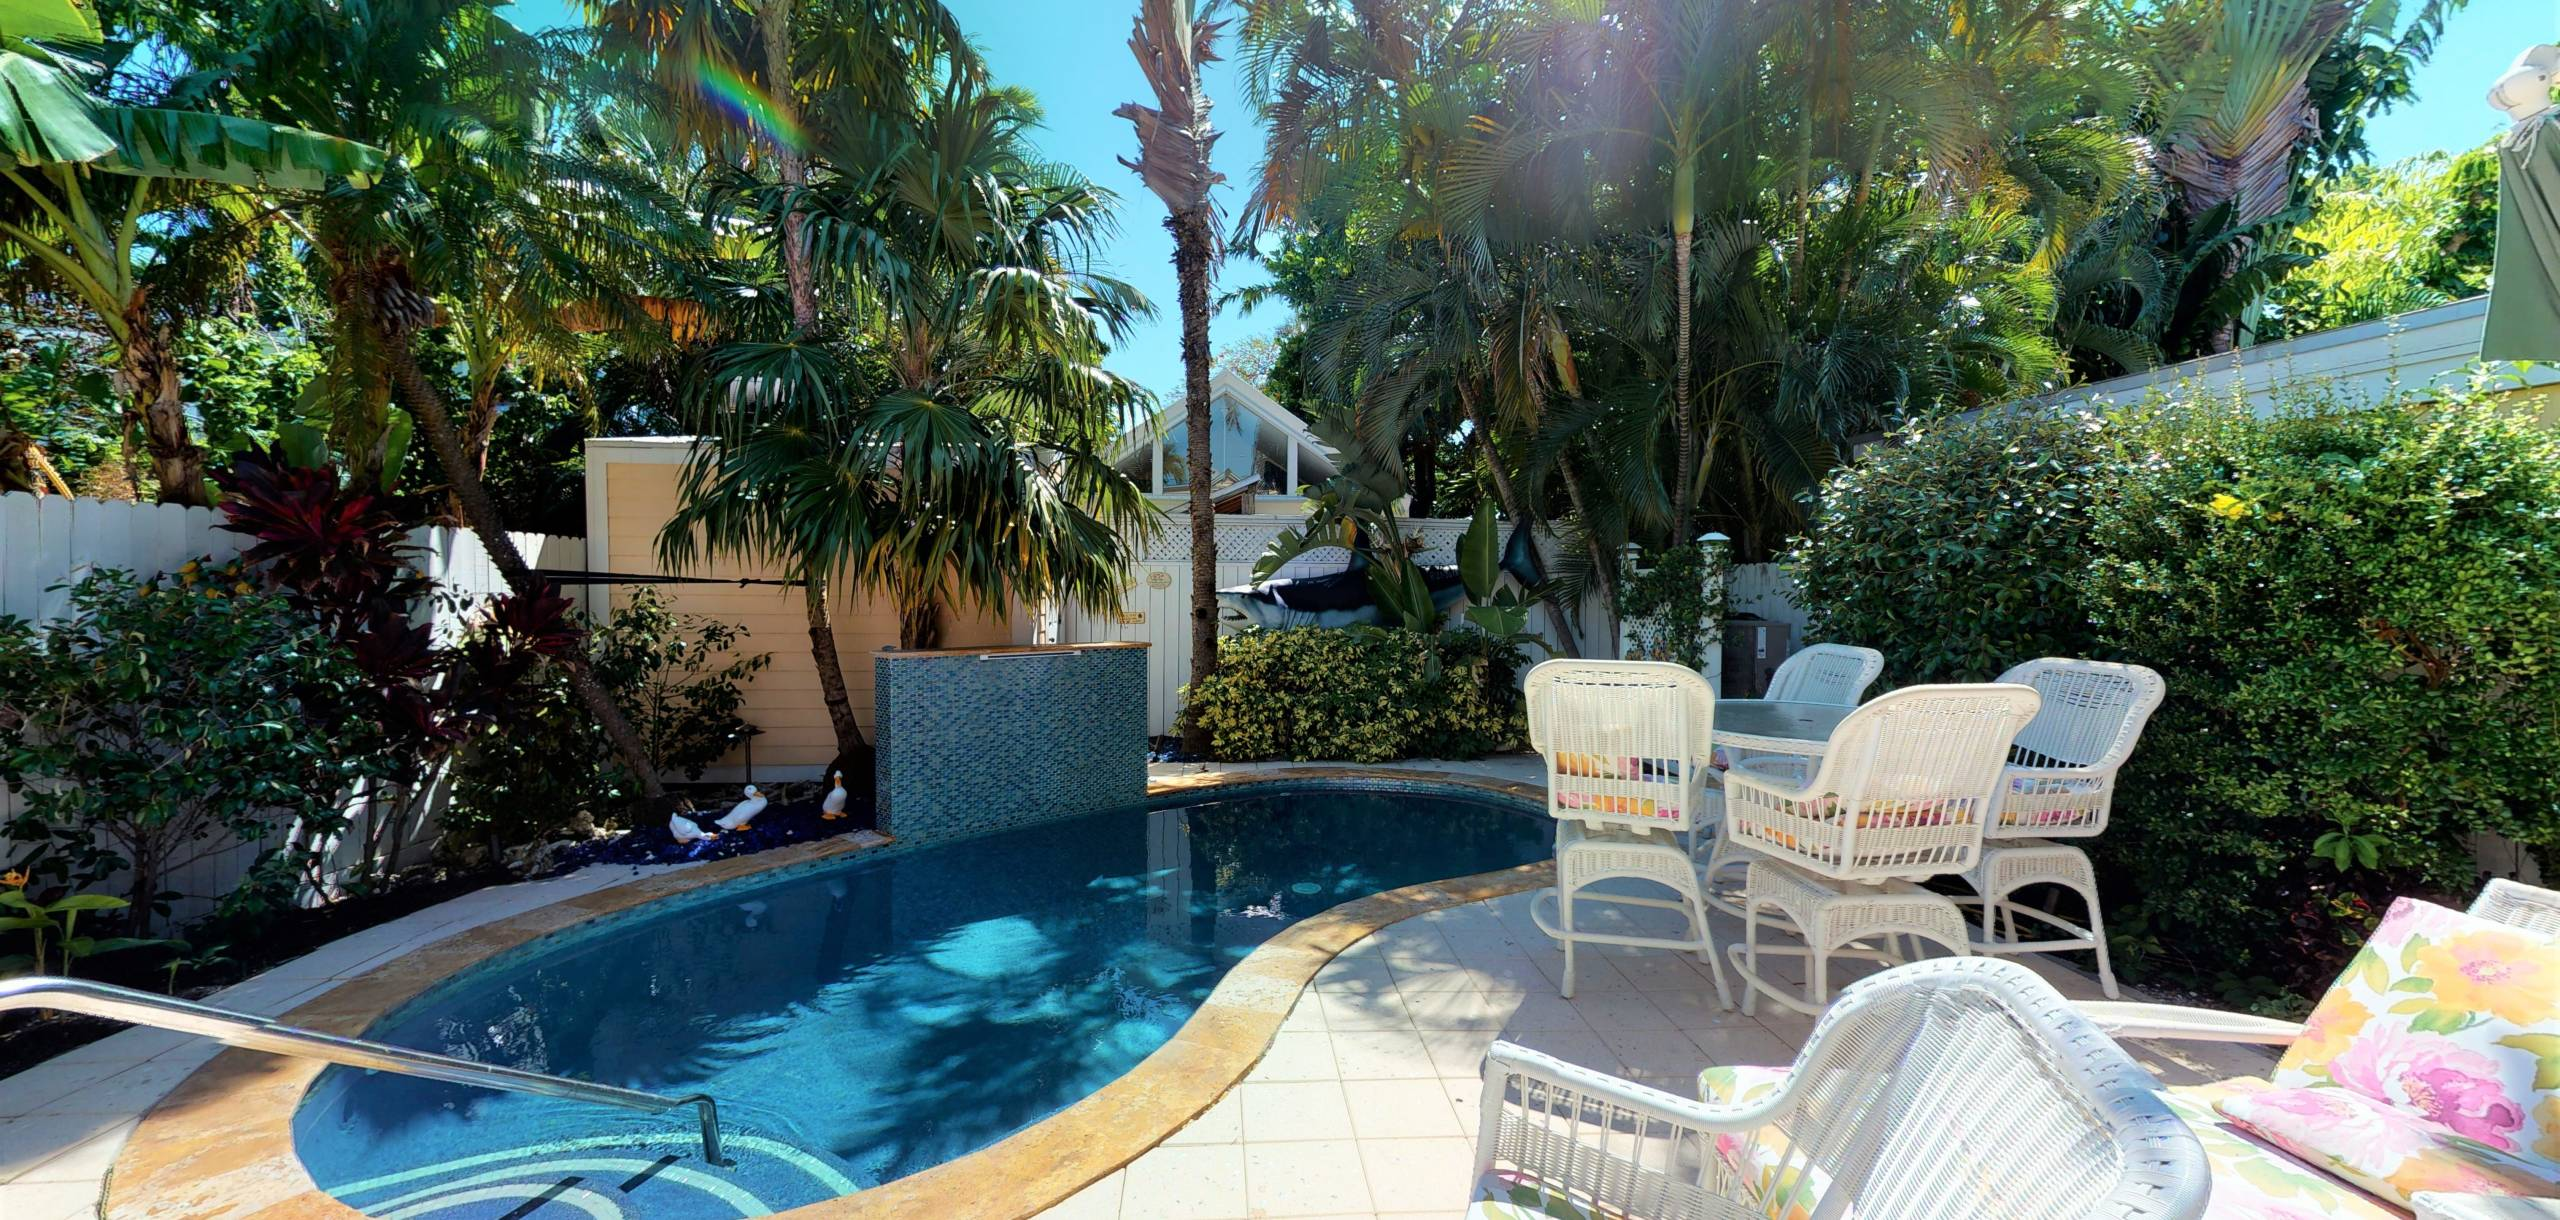 The Pool at Sea La Vie in Key West's Historic Seaport